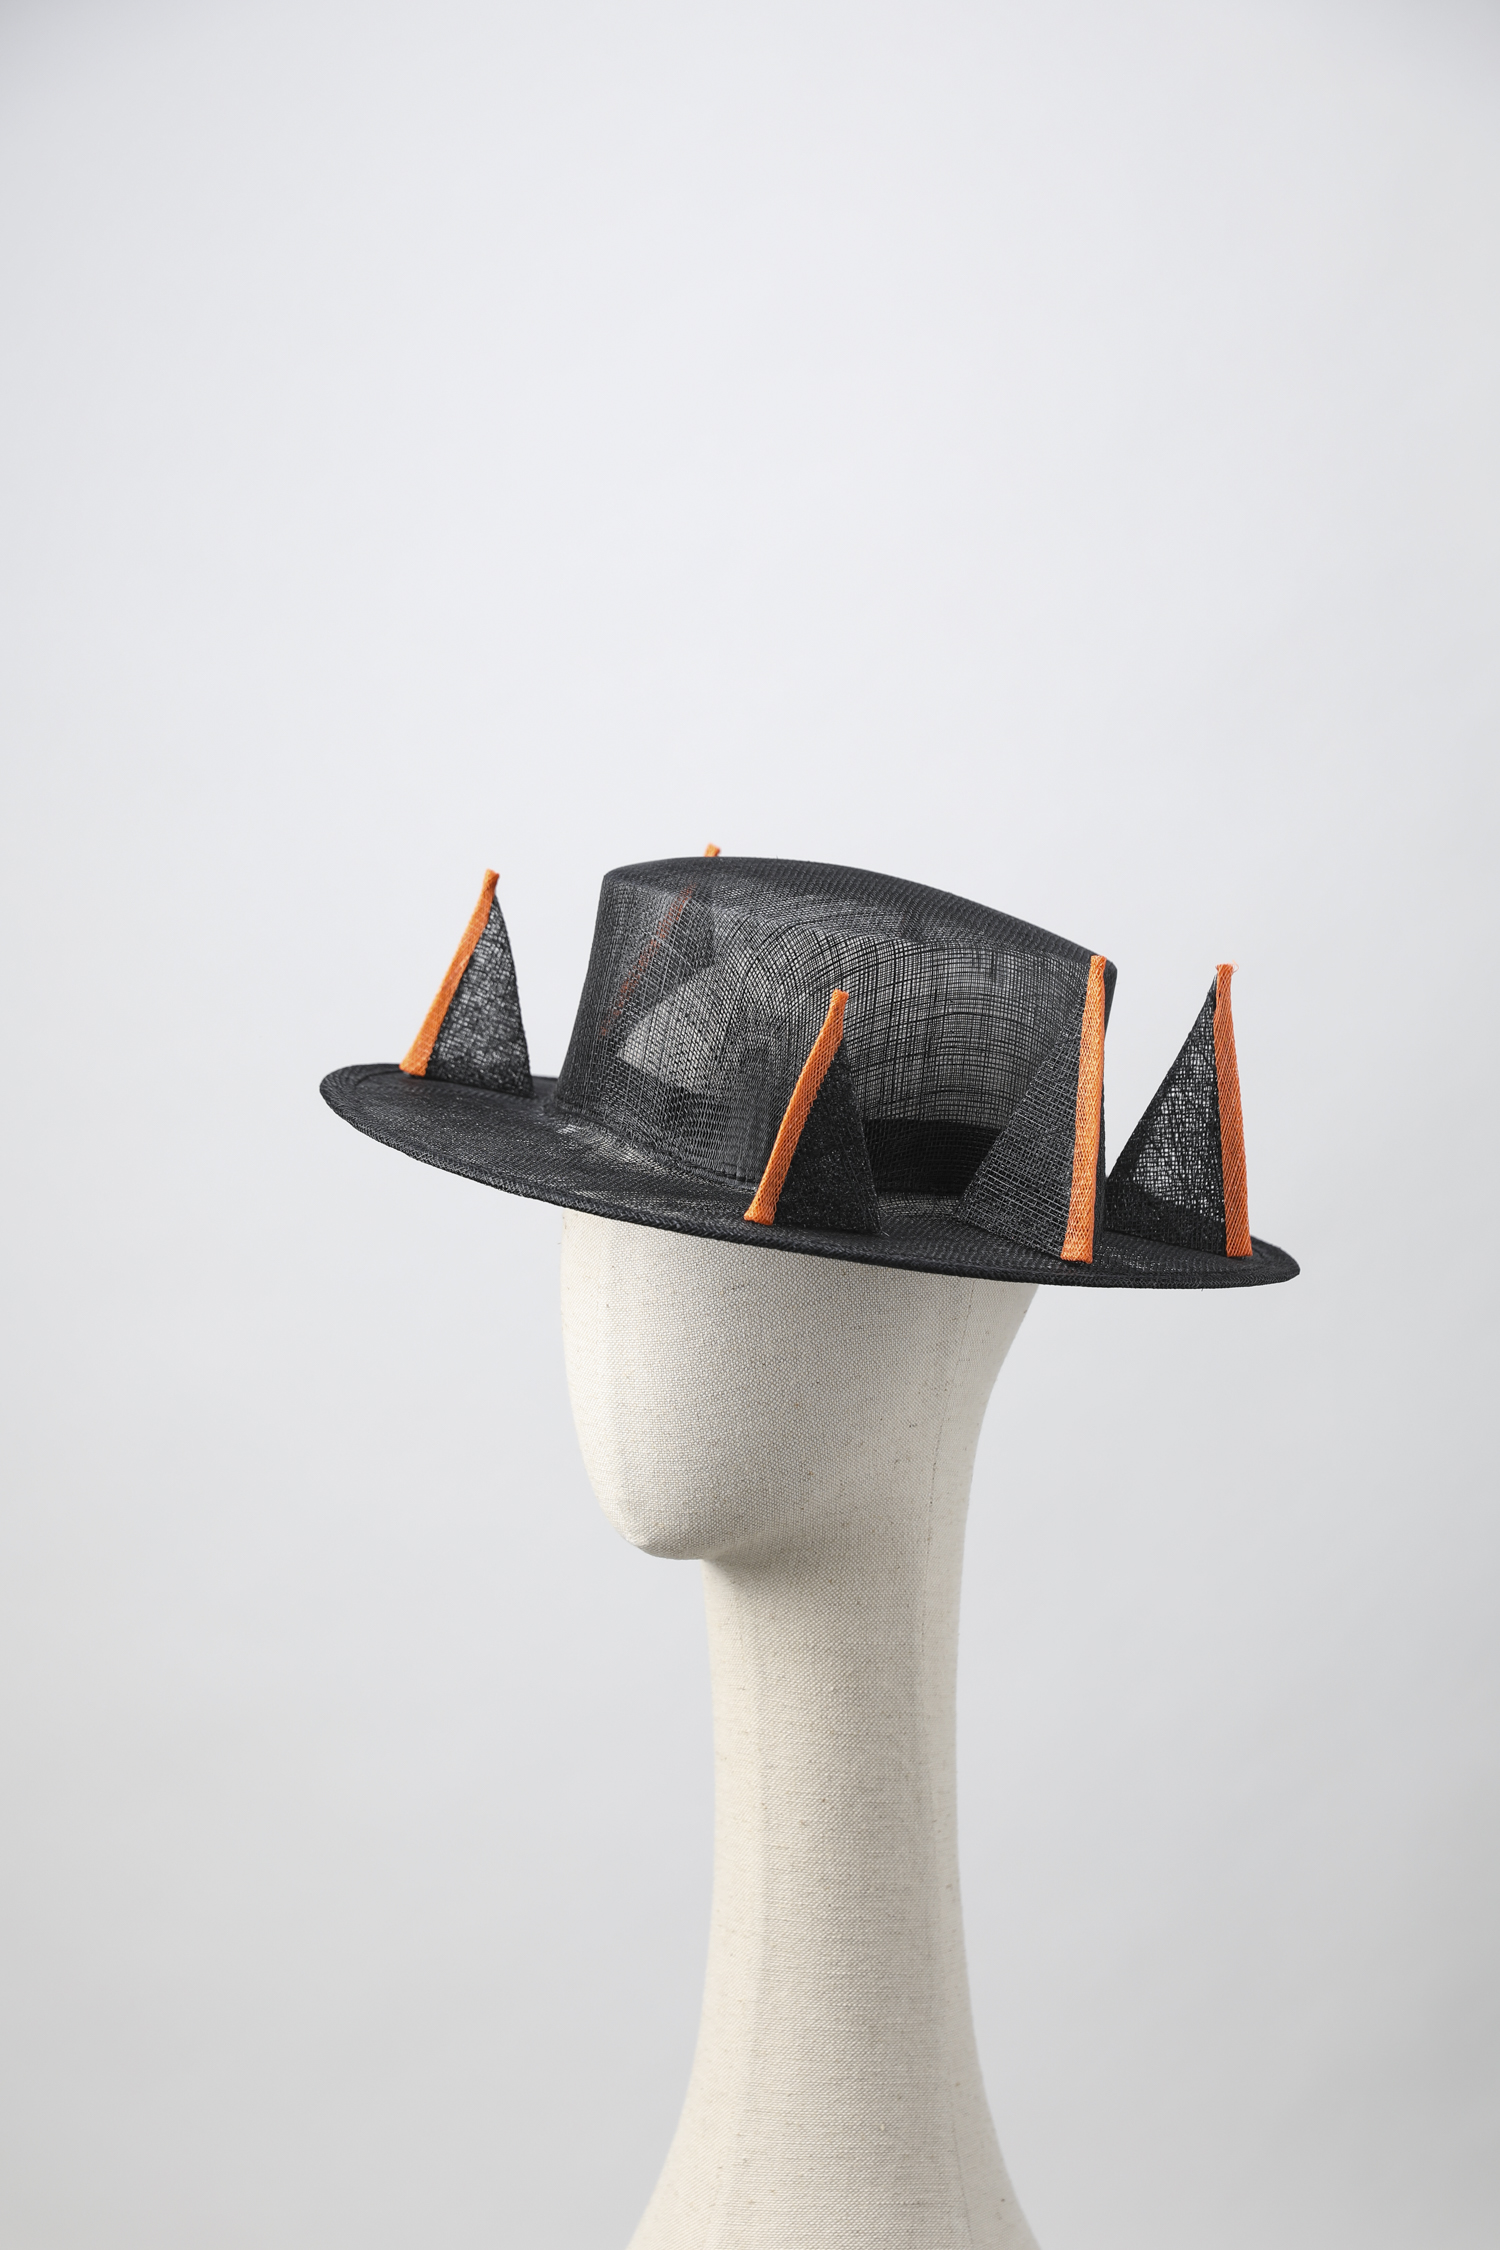 Copy of Jaycow Millinery by Jay Cheng Sample Stock 2019 (69).jpg